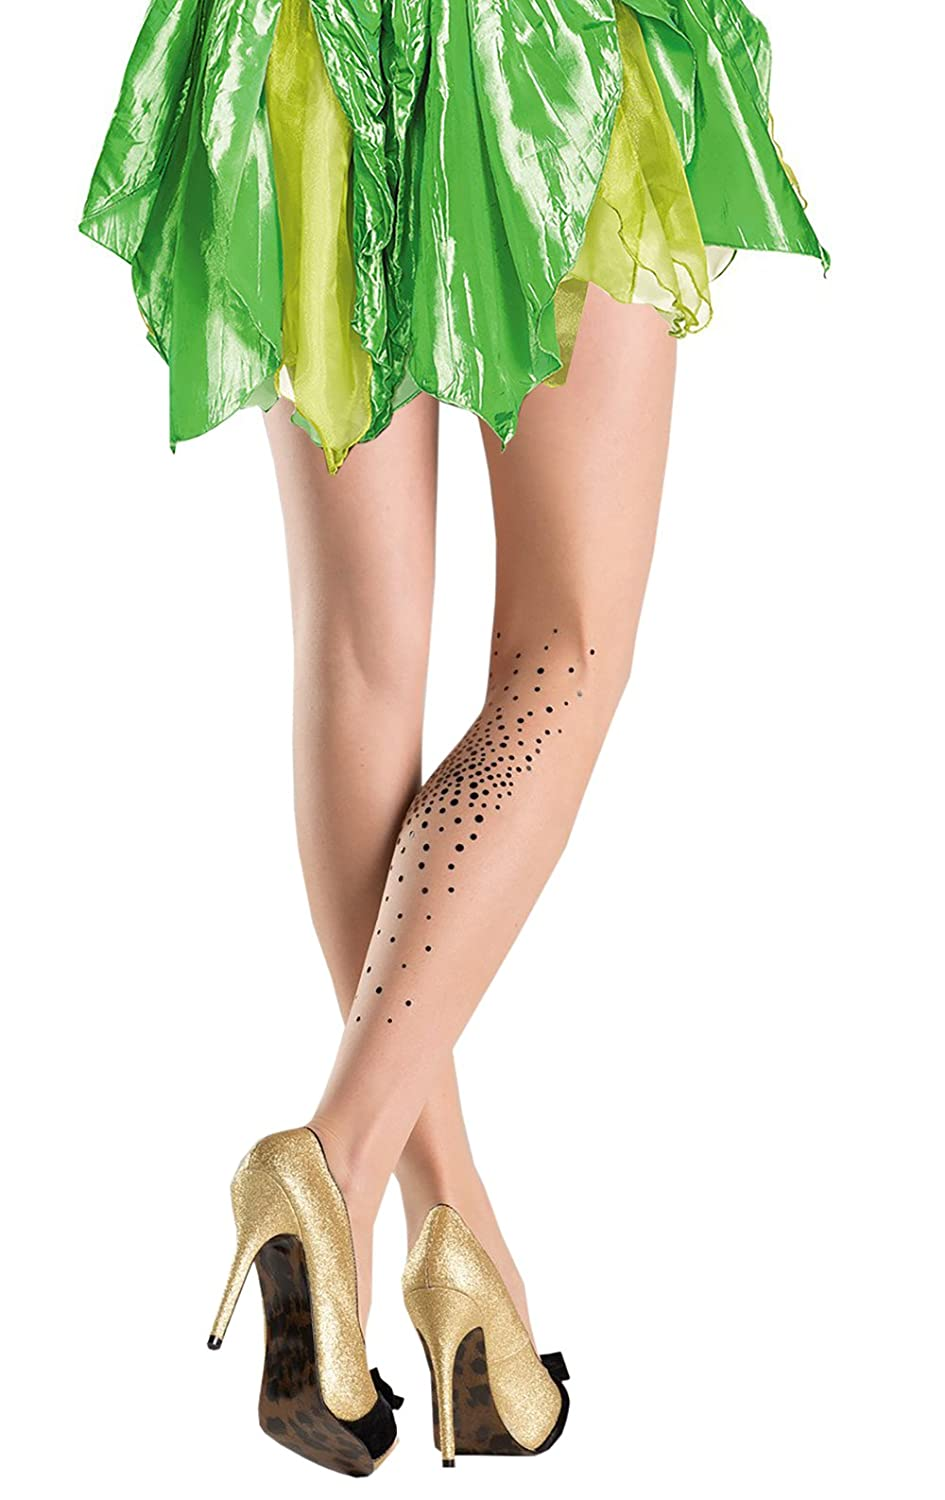 Tinkerbell nude women dressed as have